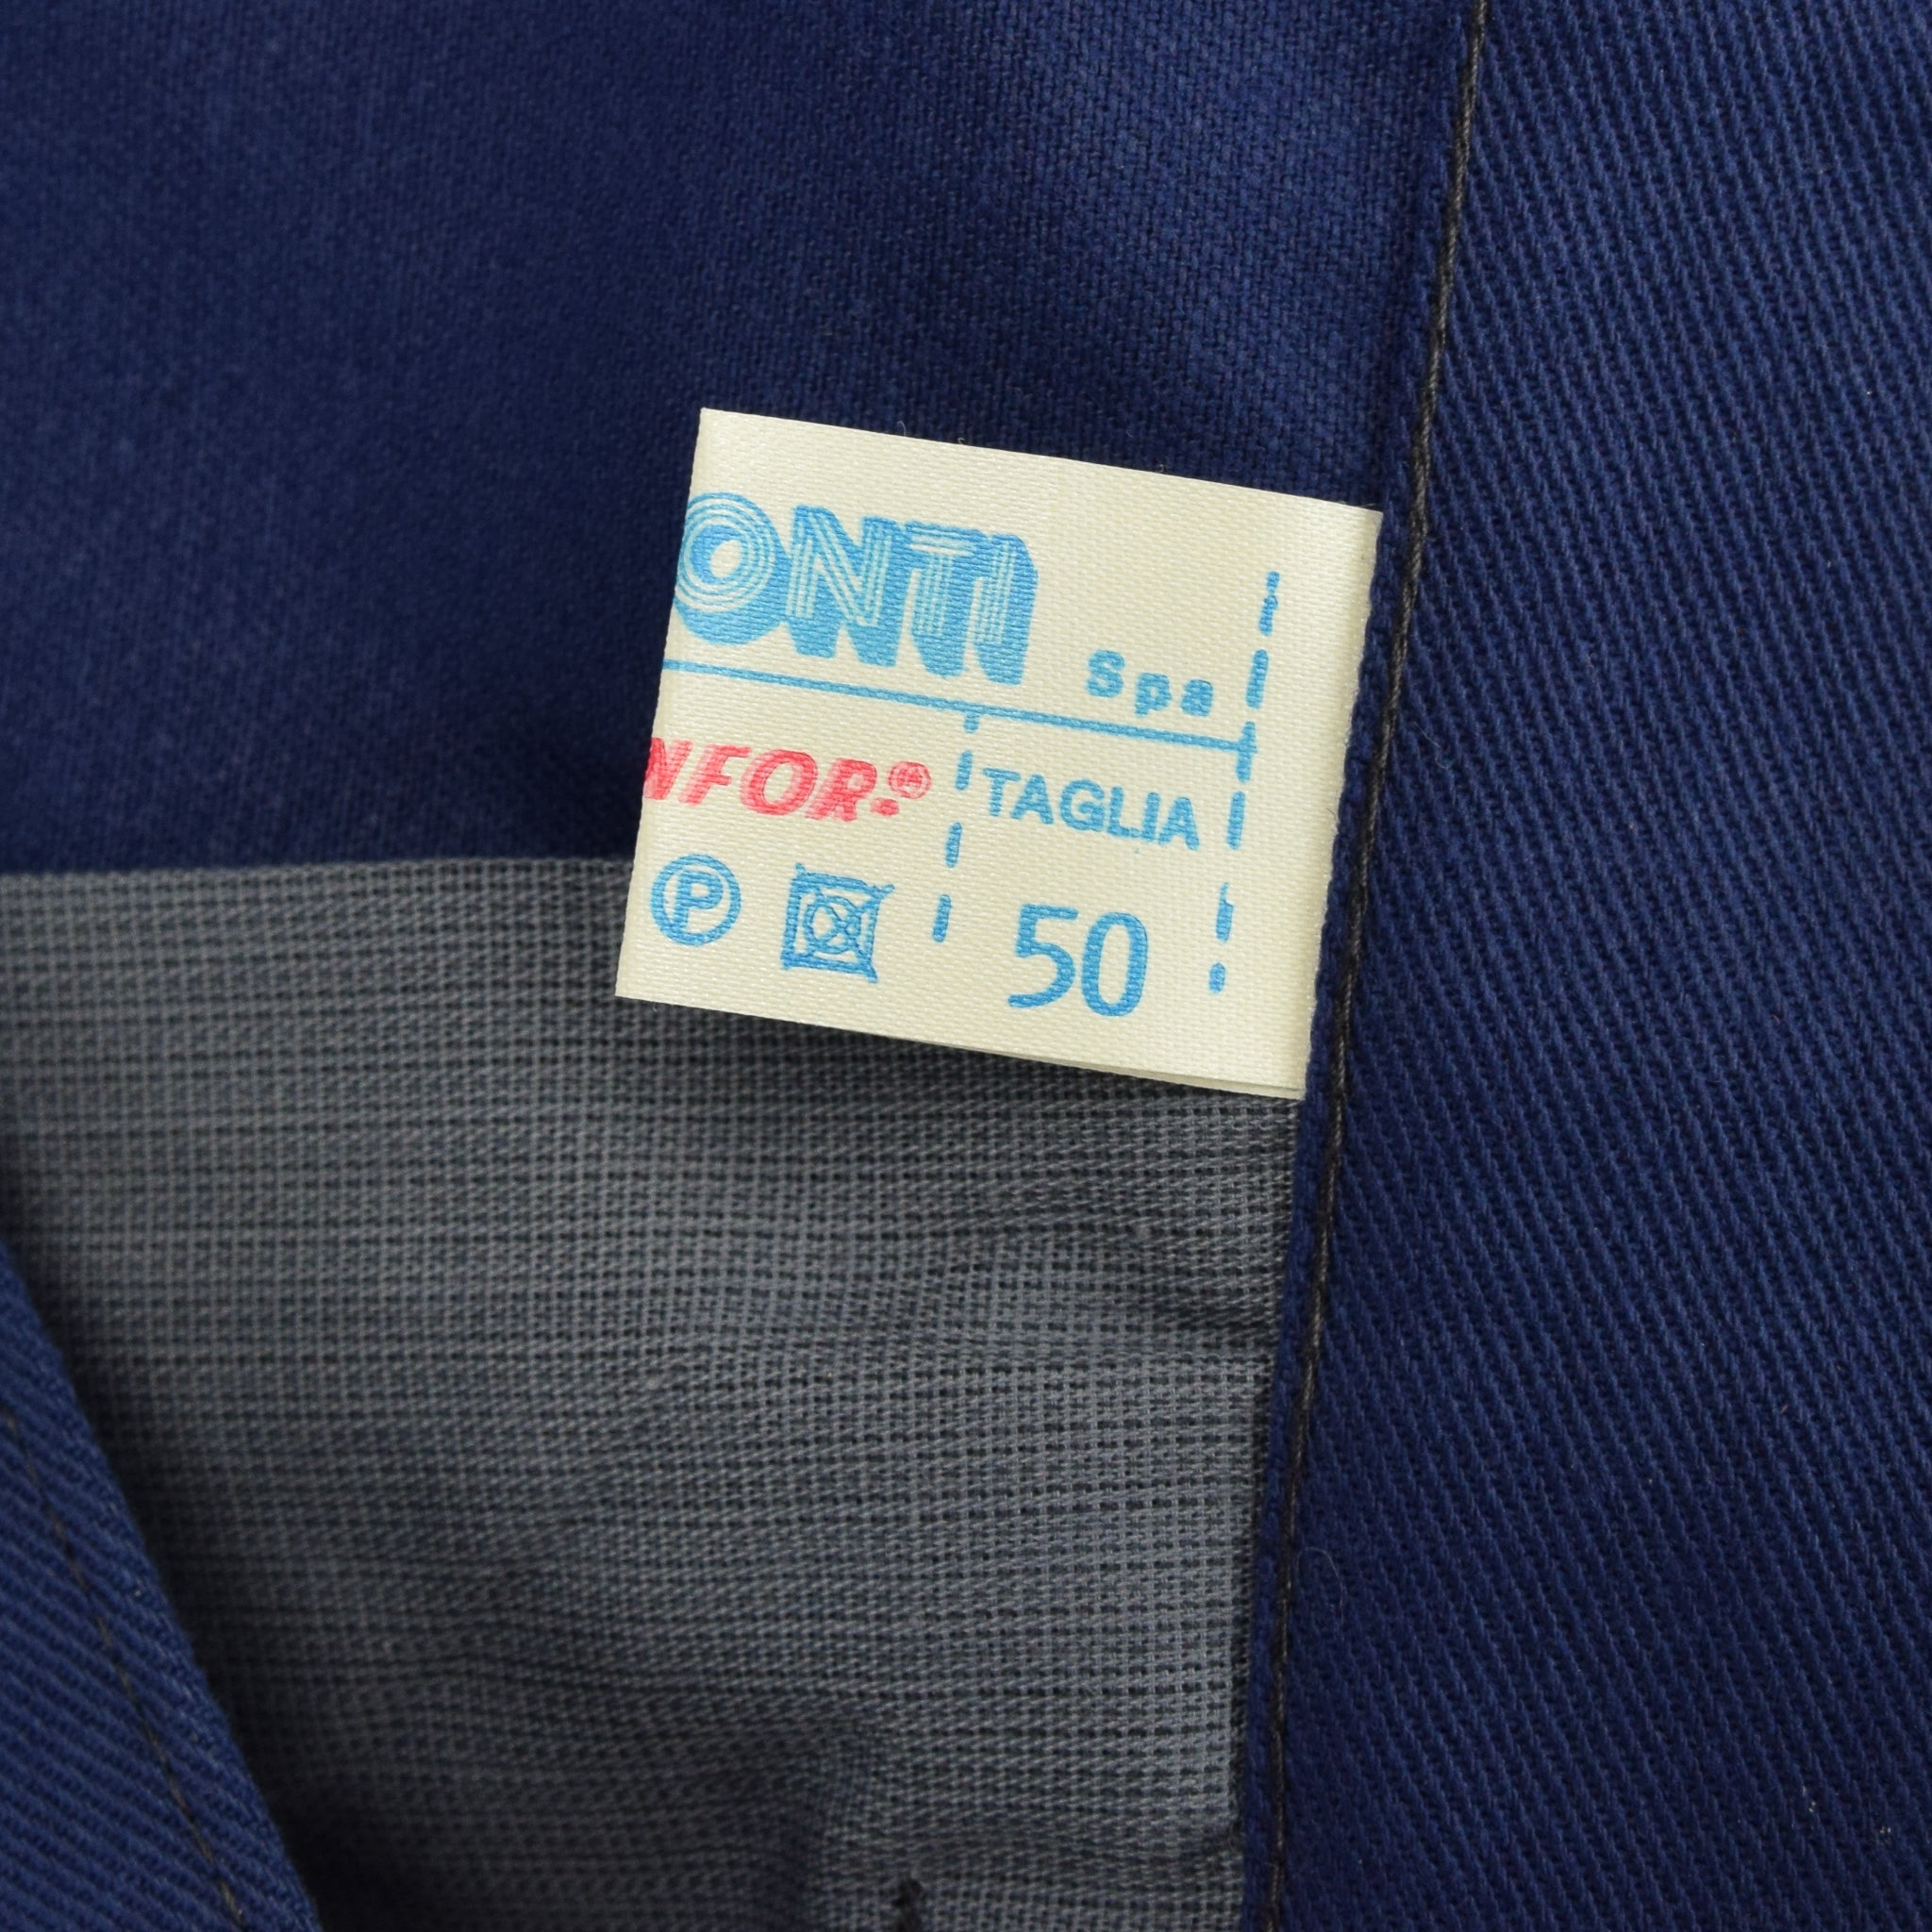 Vintage Workwear Blue French Style Work Utility Trousers Italy Made 32 W 25 L label